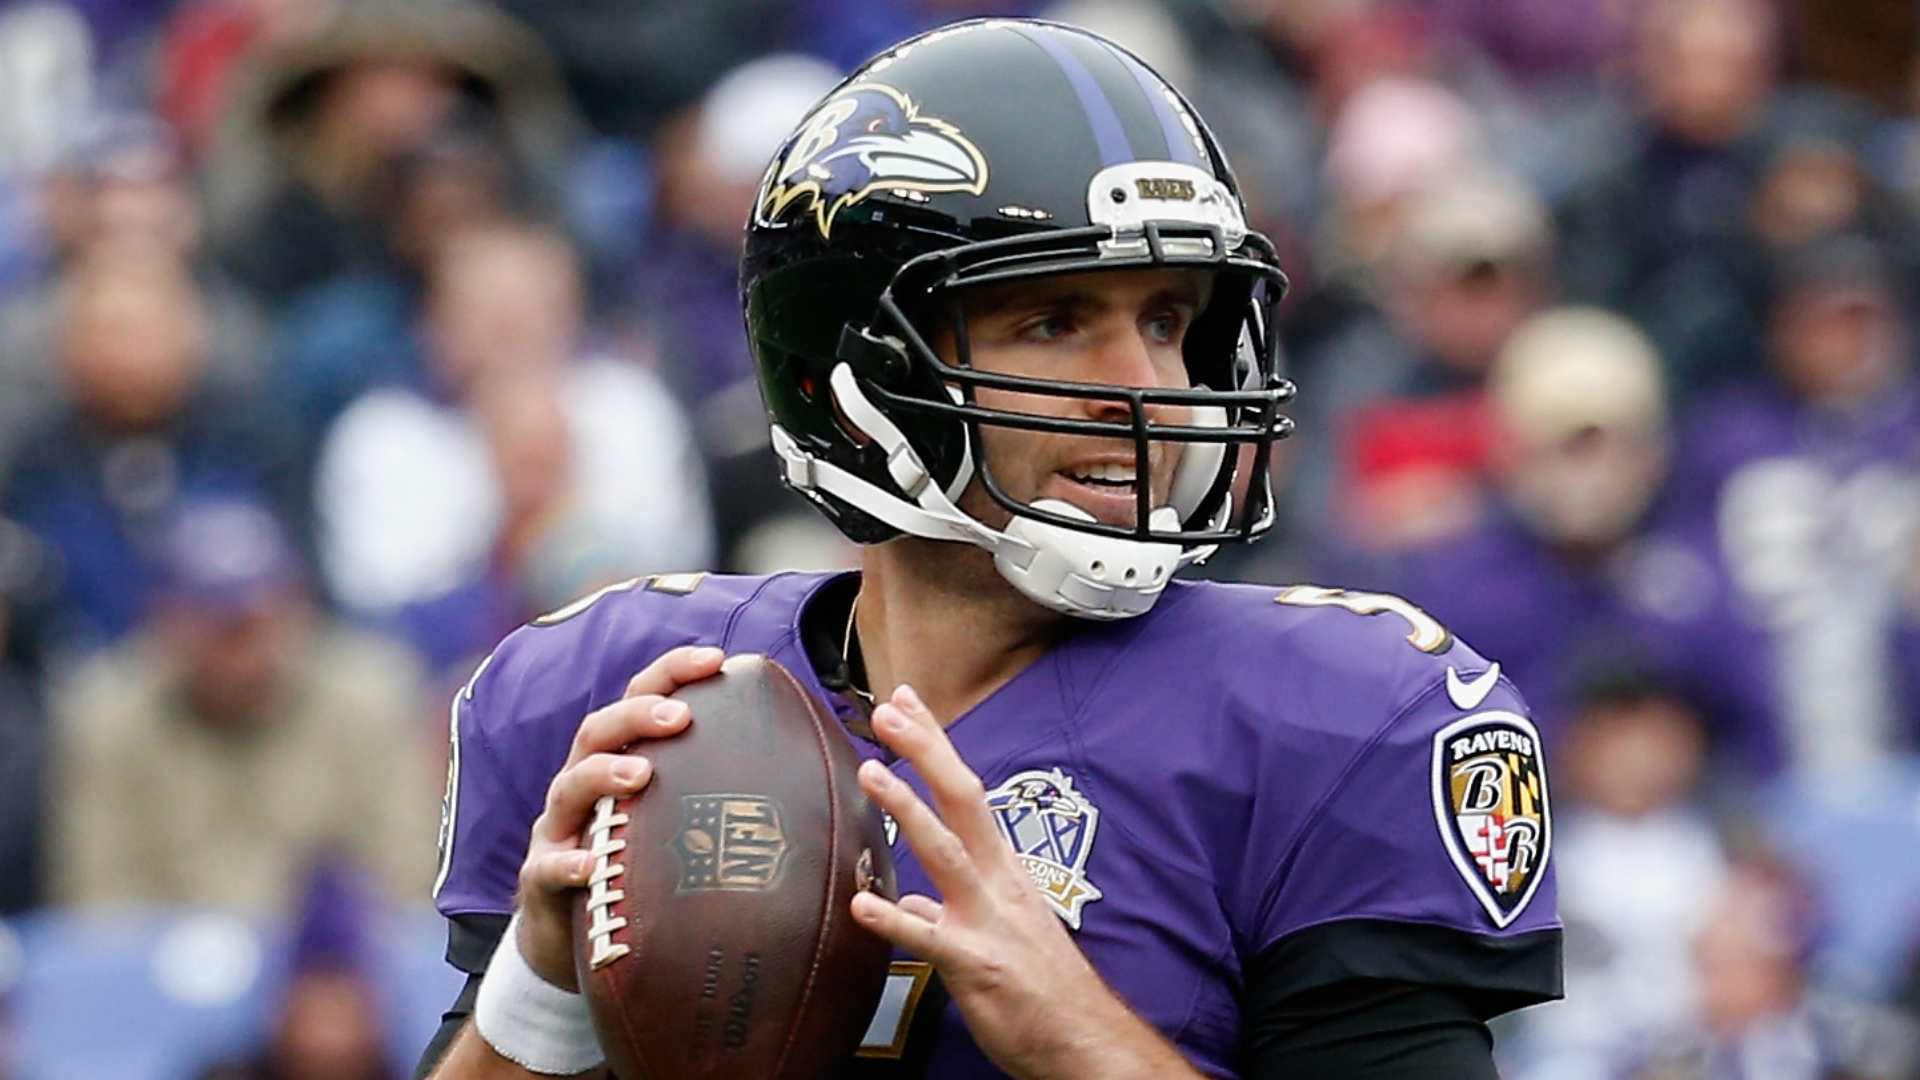 joe-flacco-012116-usnews-getty-ftr_1vrh8